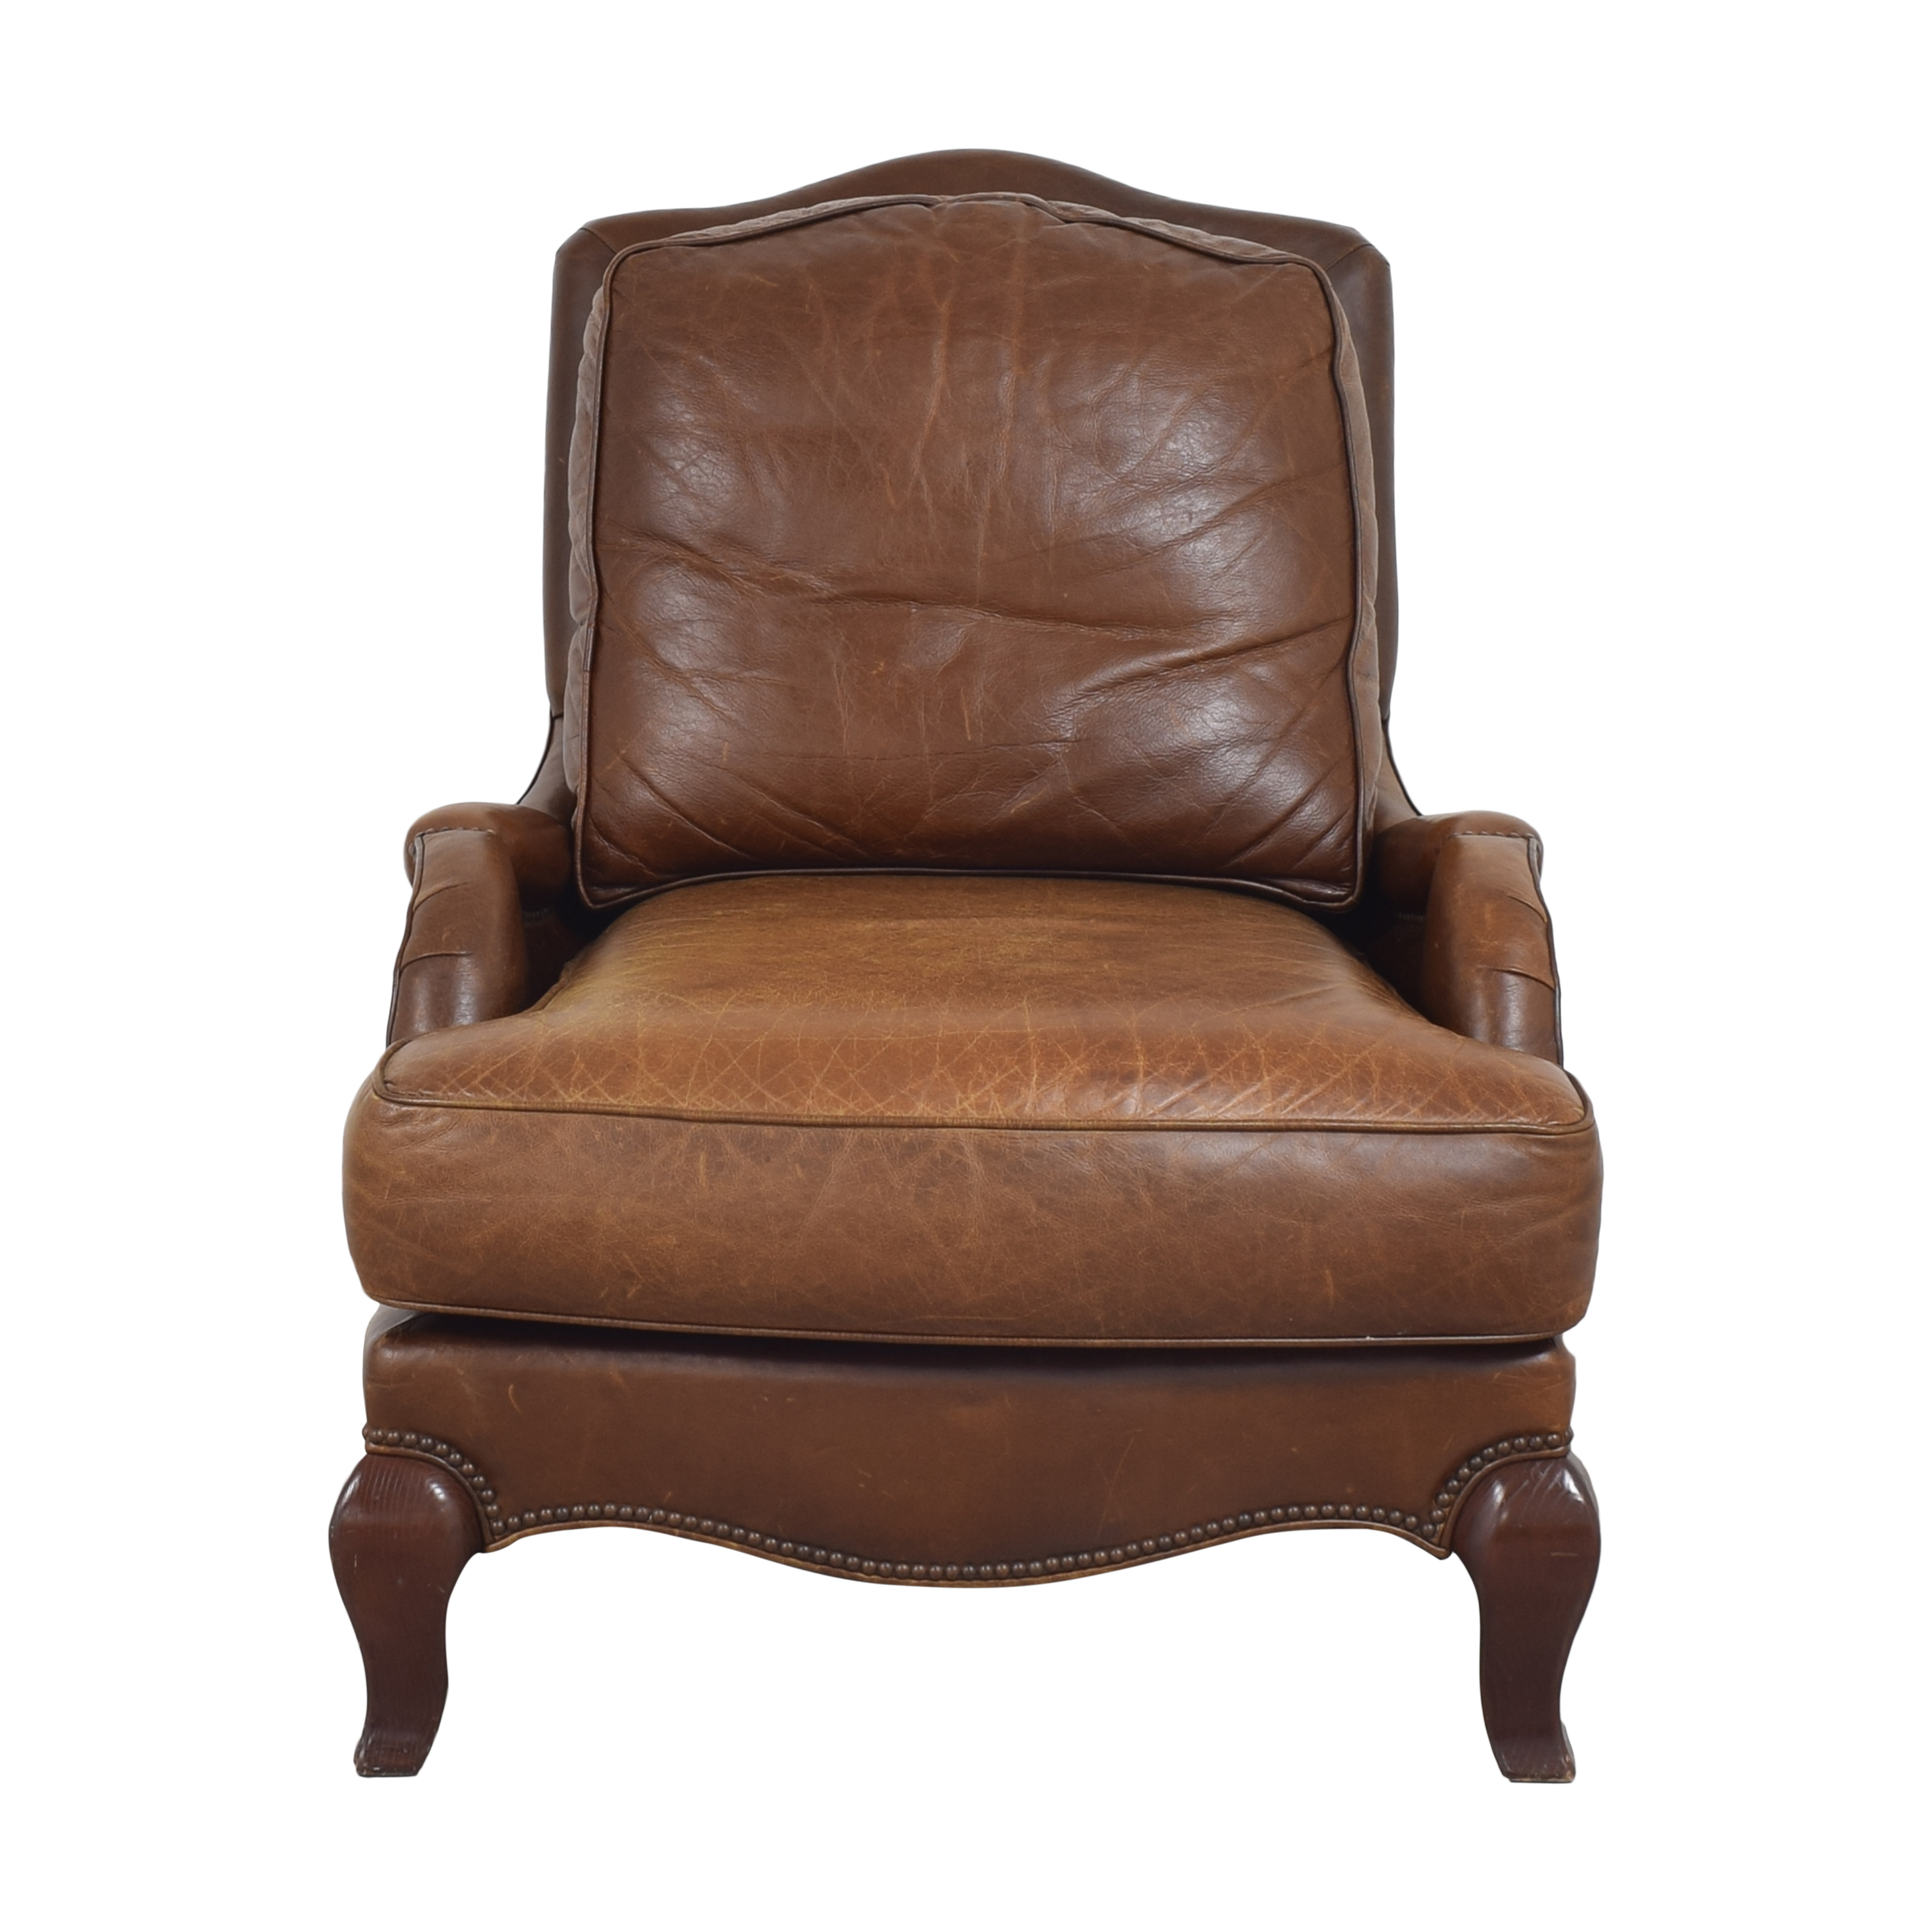 Pearson Pearson Lounge Accent Chair used